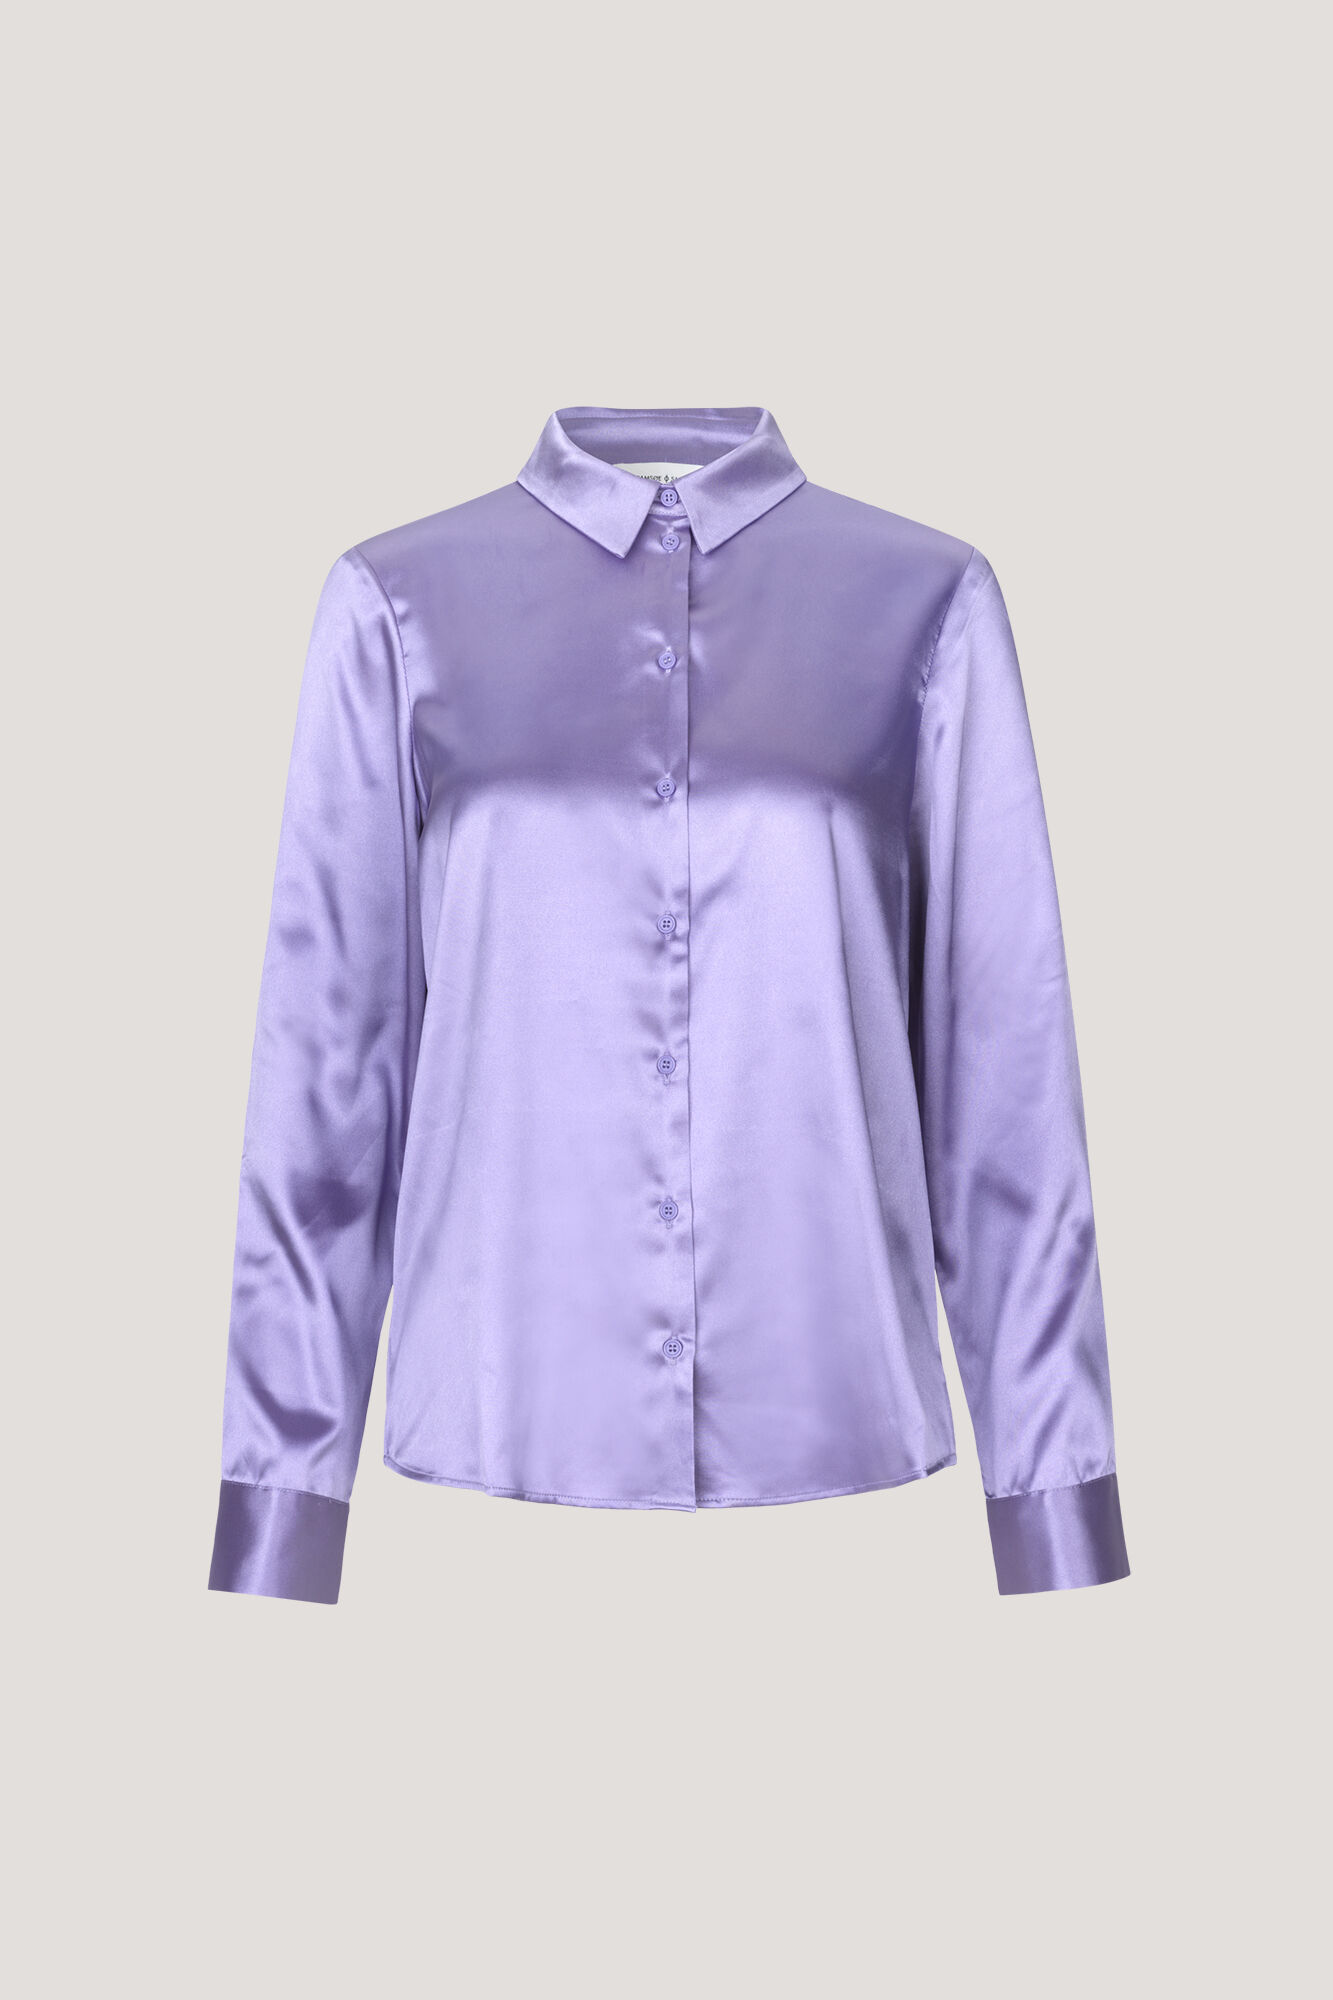 Milly np shirt 10838